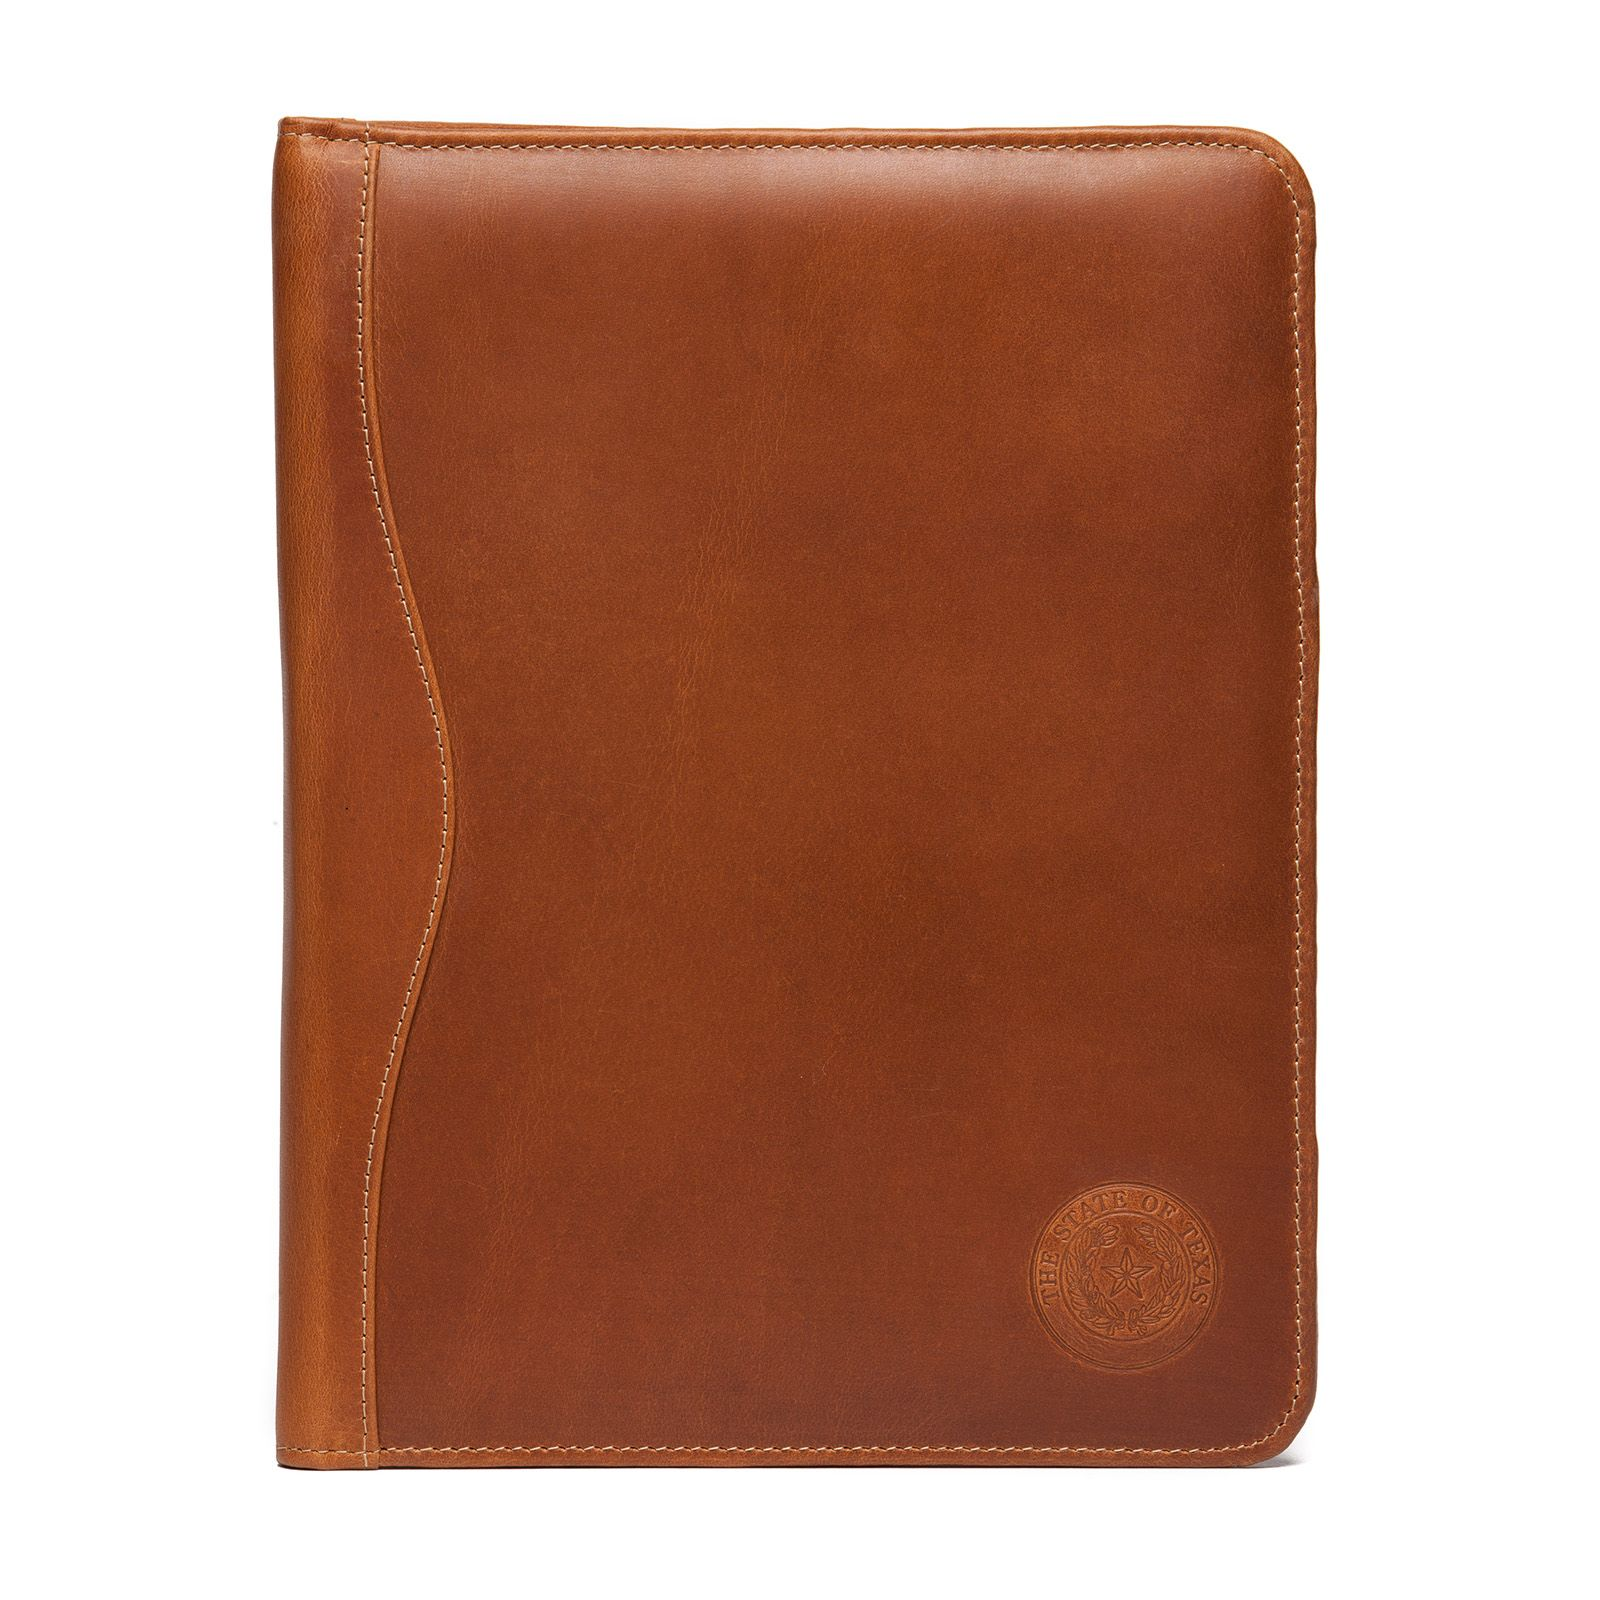 Leather Padded Cover Portoflio